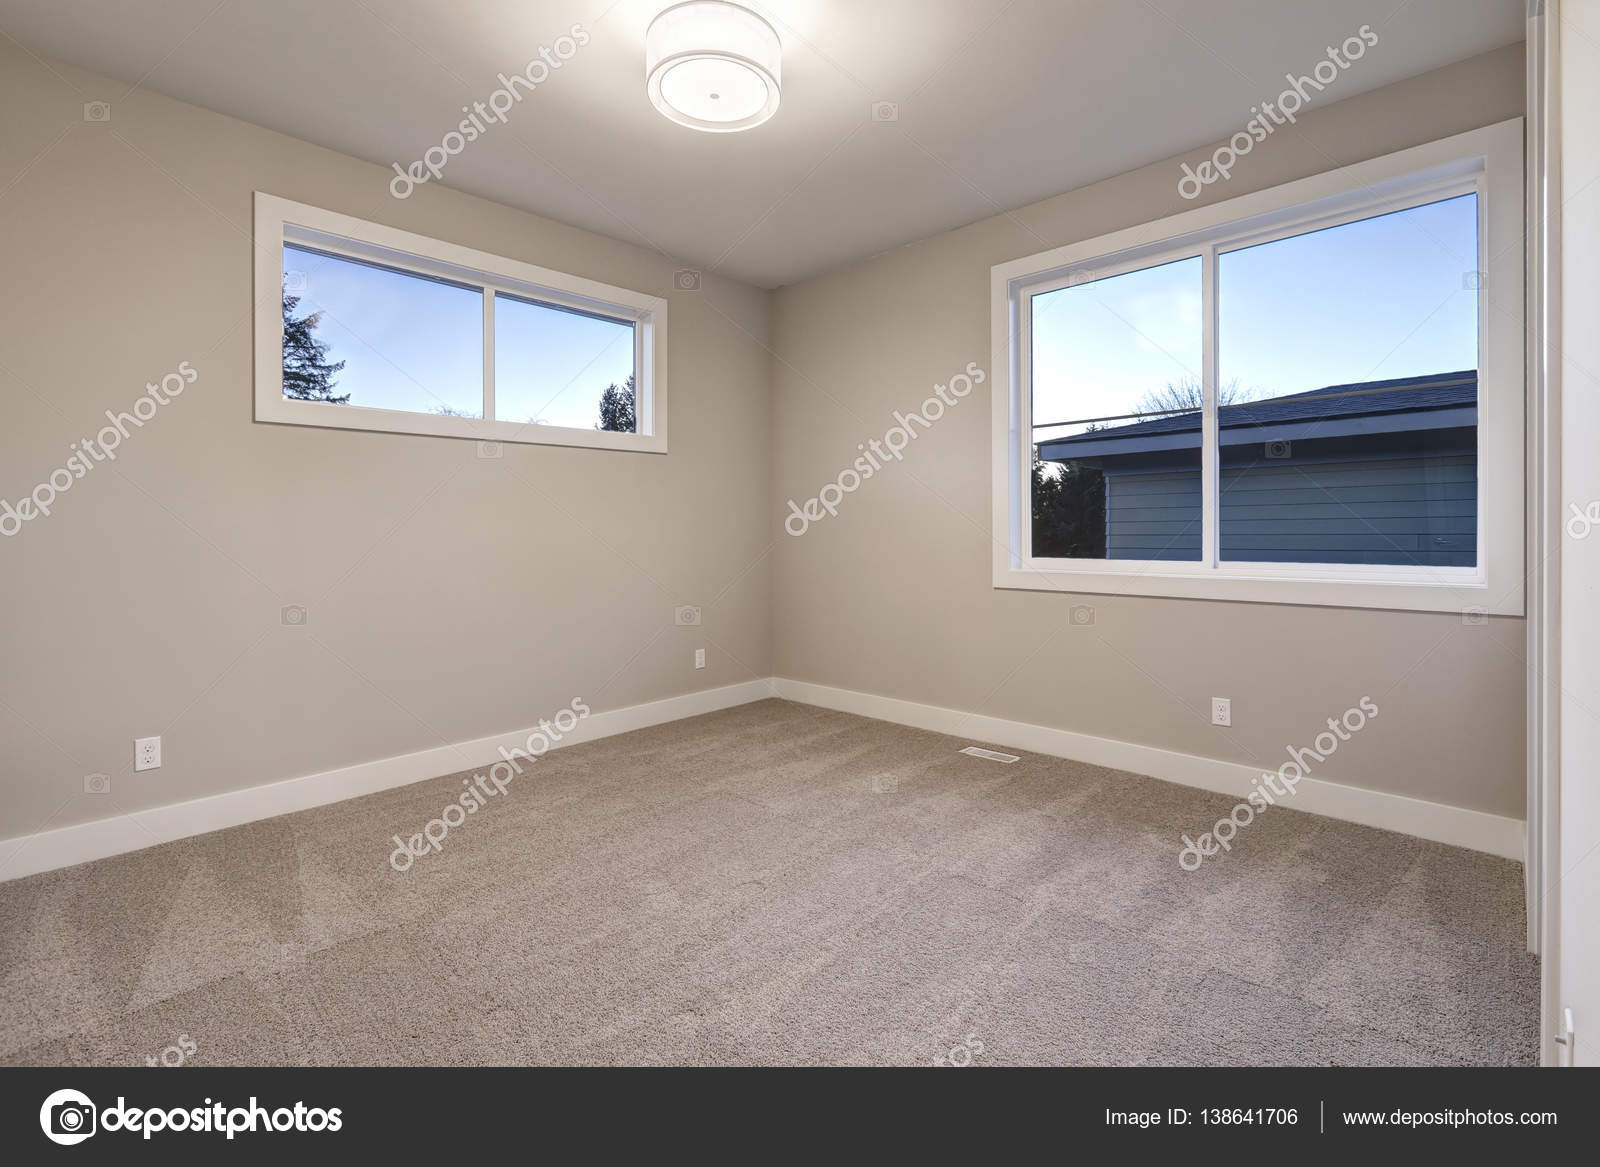 Empty room interior with grey walls paint color stock for Colores de pintura para sala